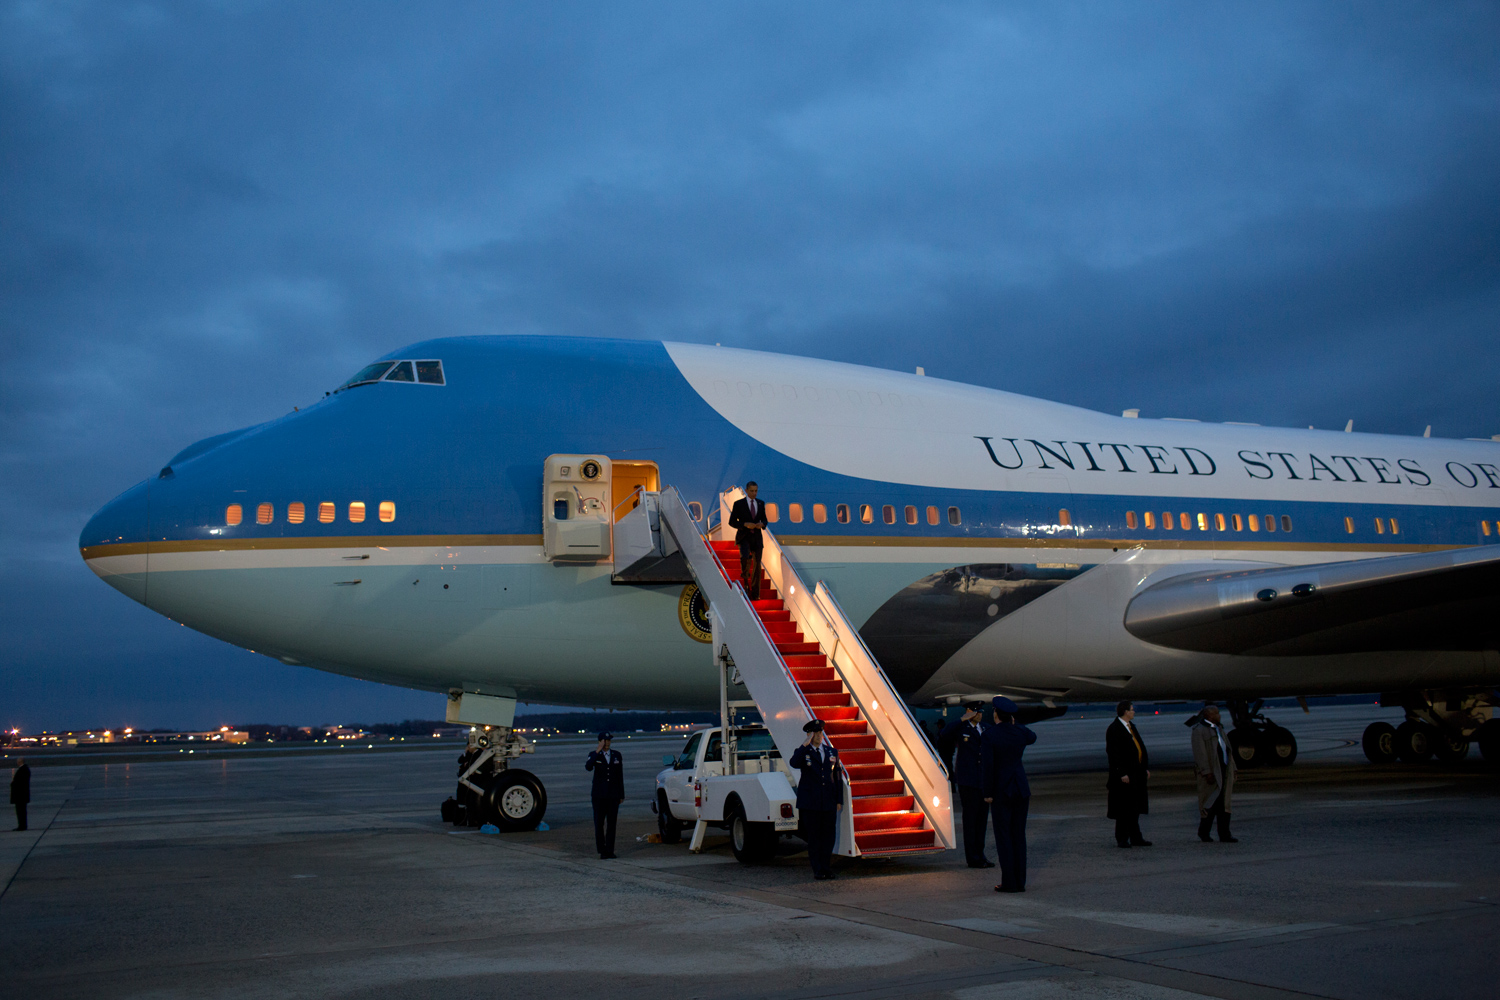 As dusk falls, the President arrives back at Andrews Air Force Base in Maryland.